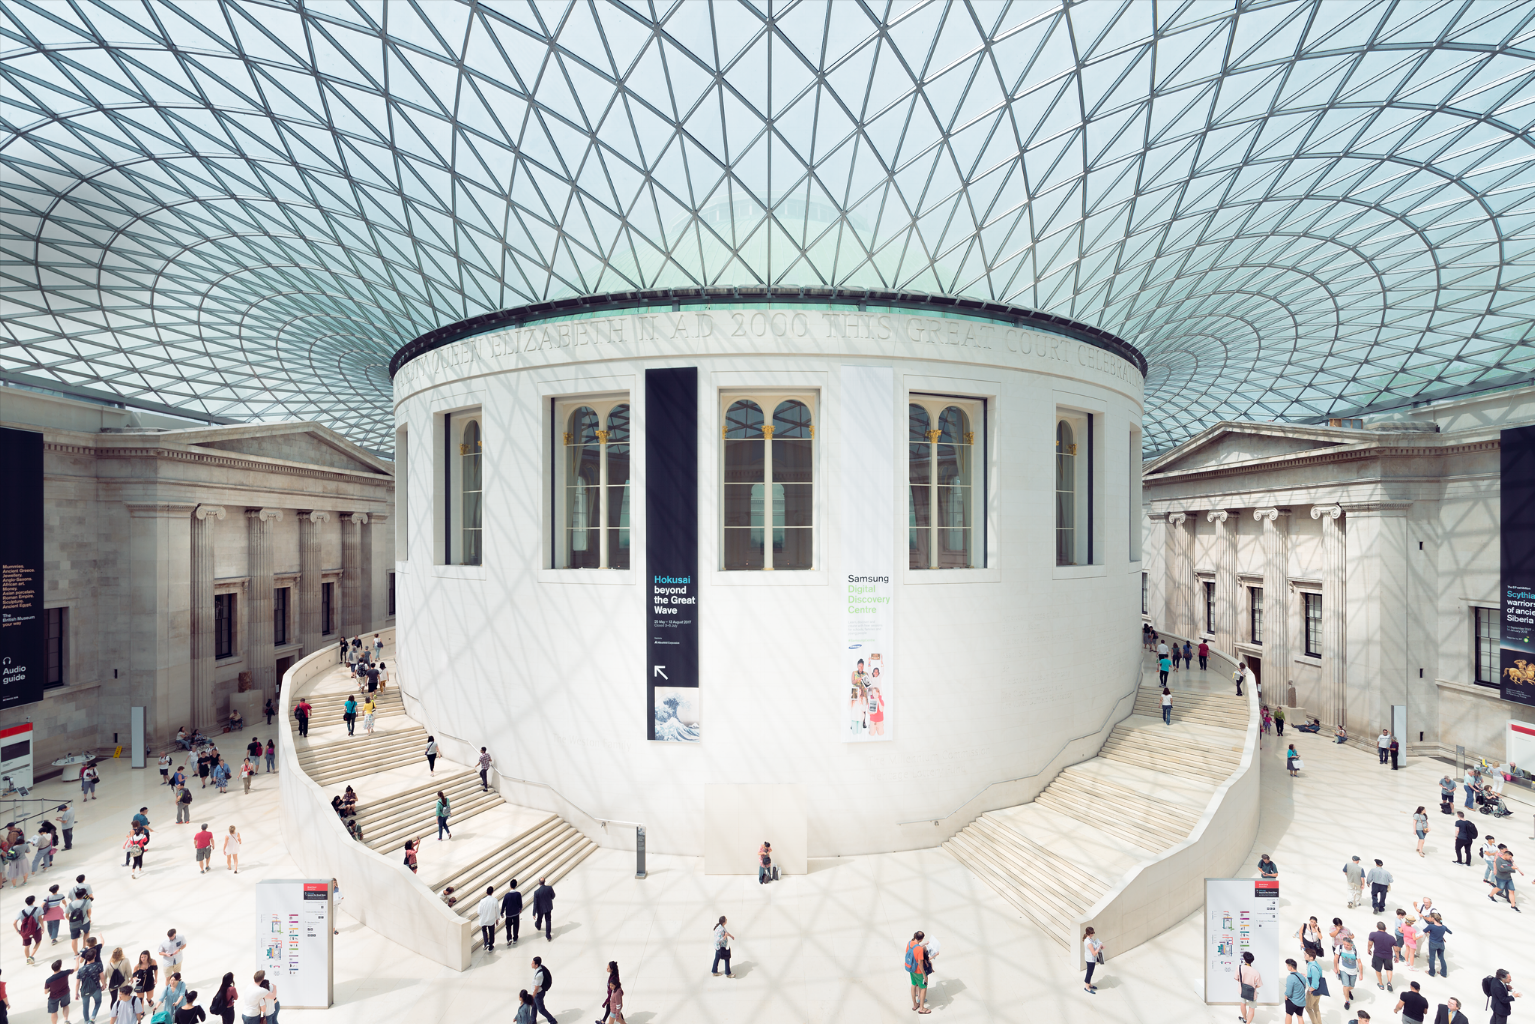 Moderne Innenarchitektur British Museum of London